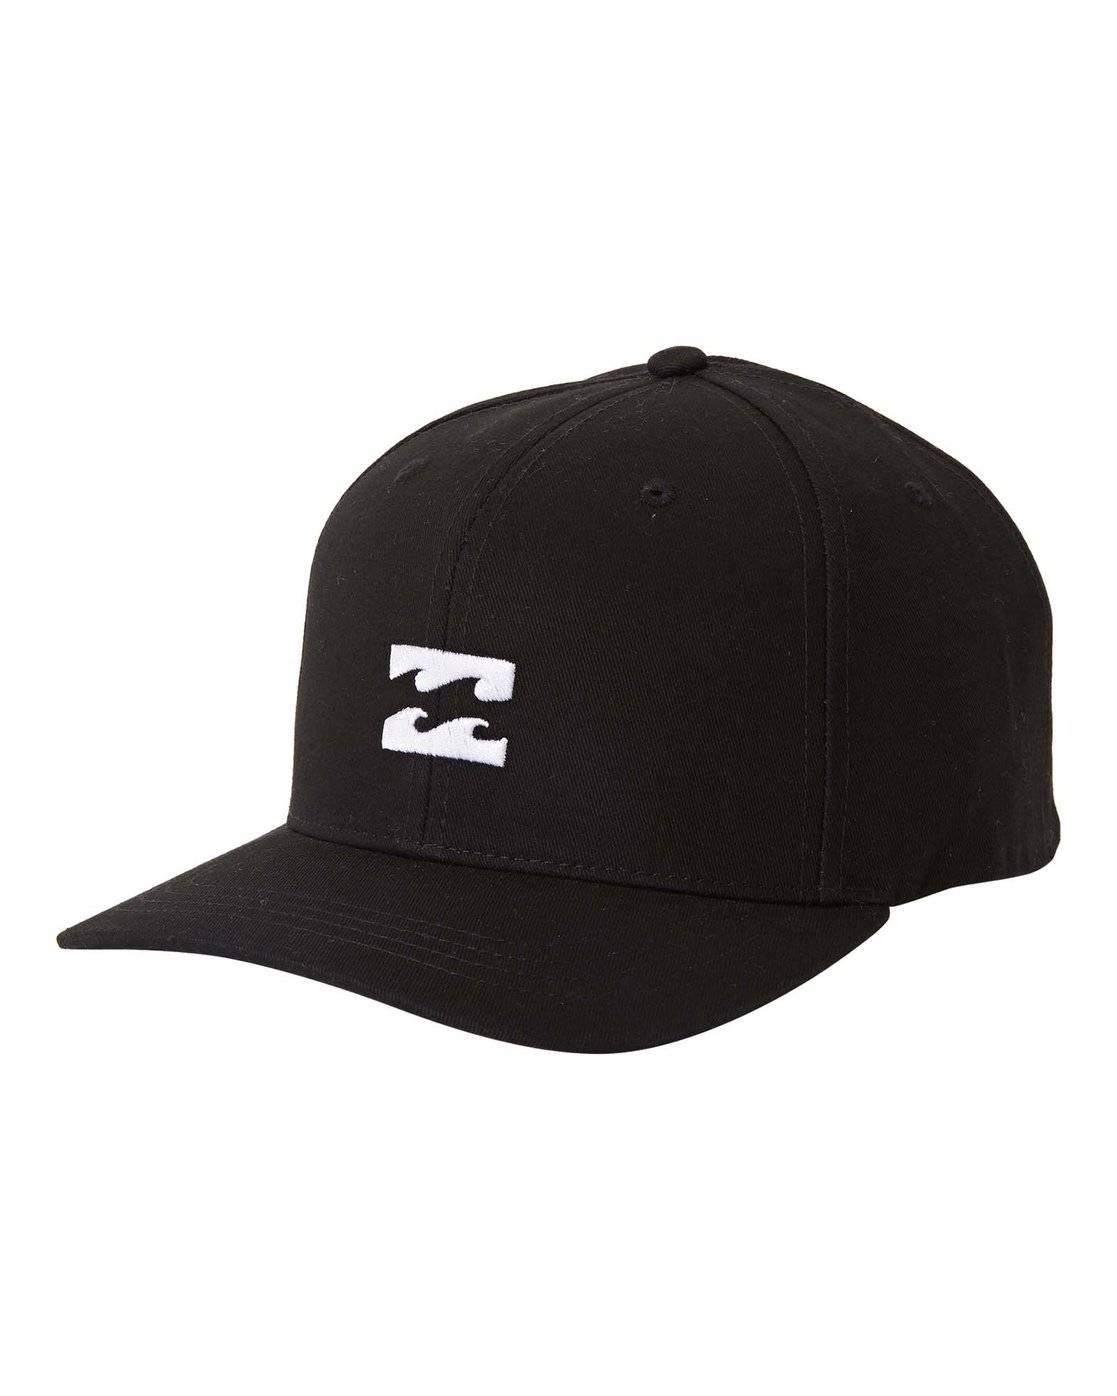 Billabong All Day Snapback  - Black - Size: One Size